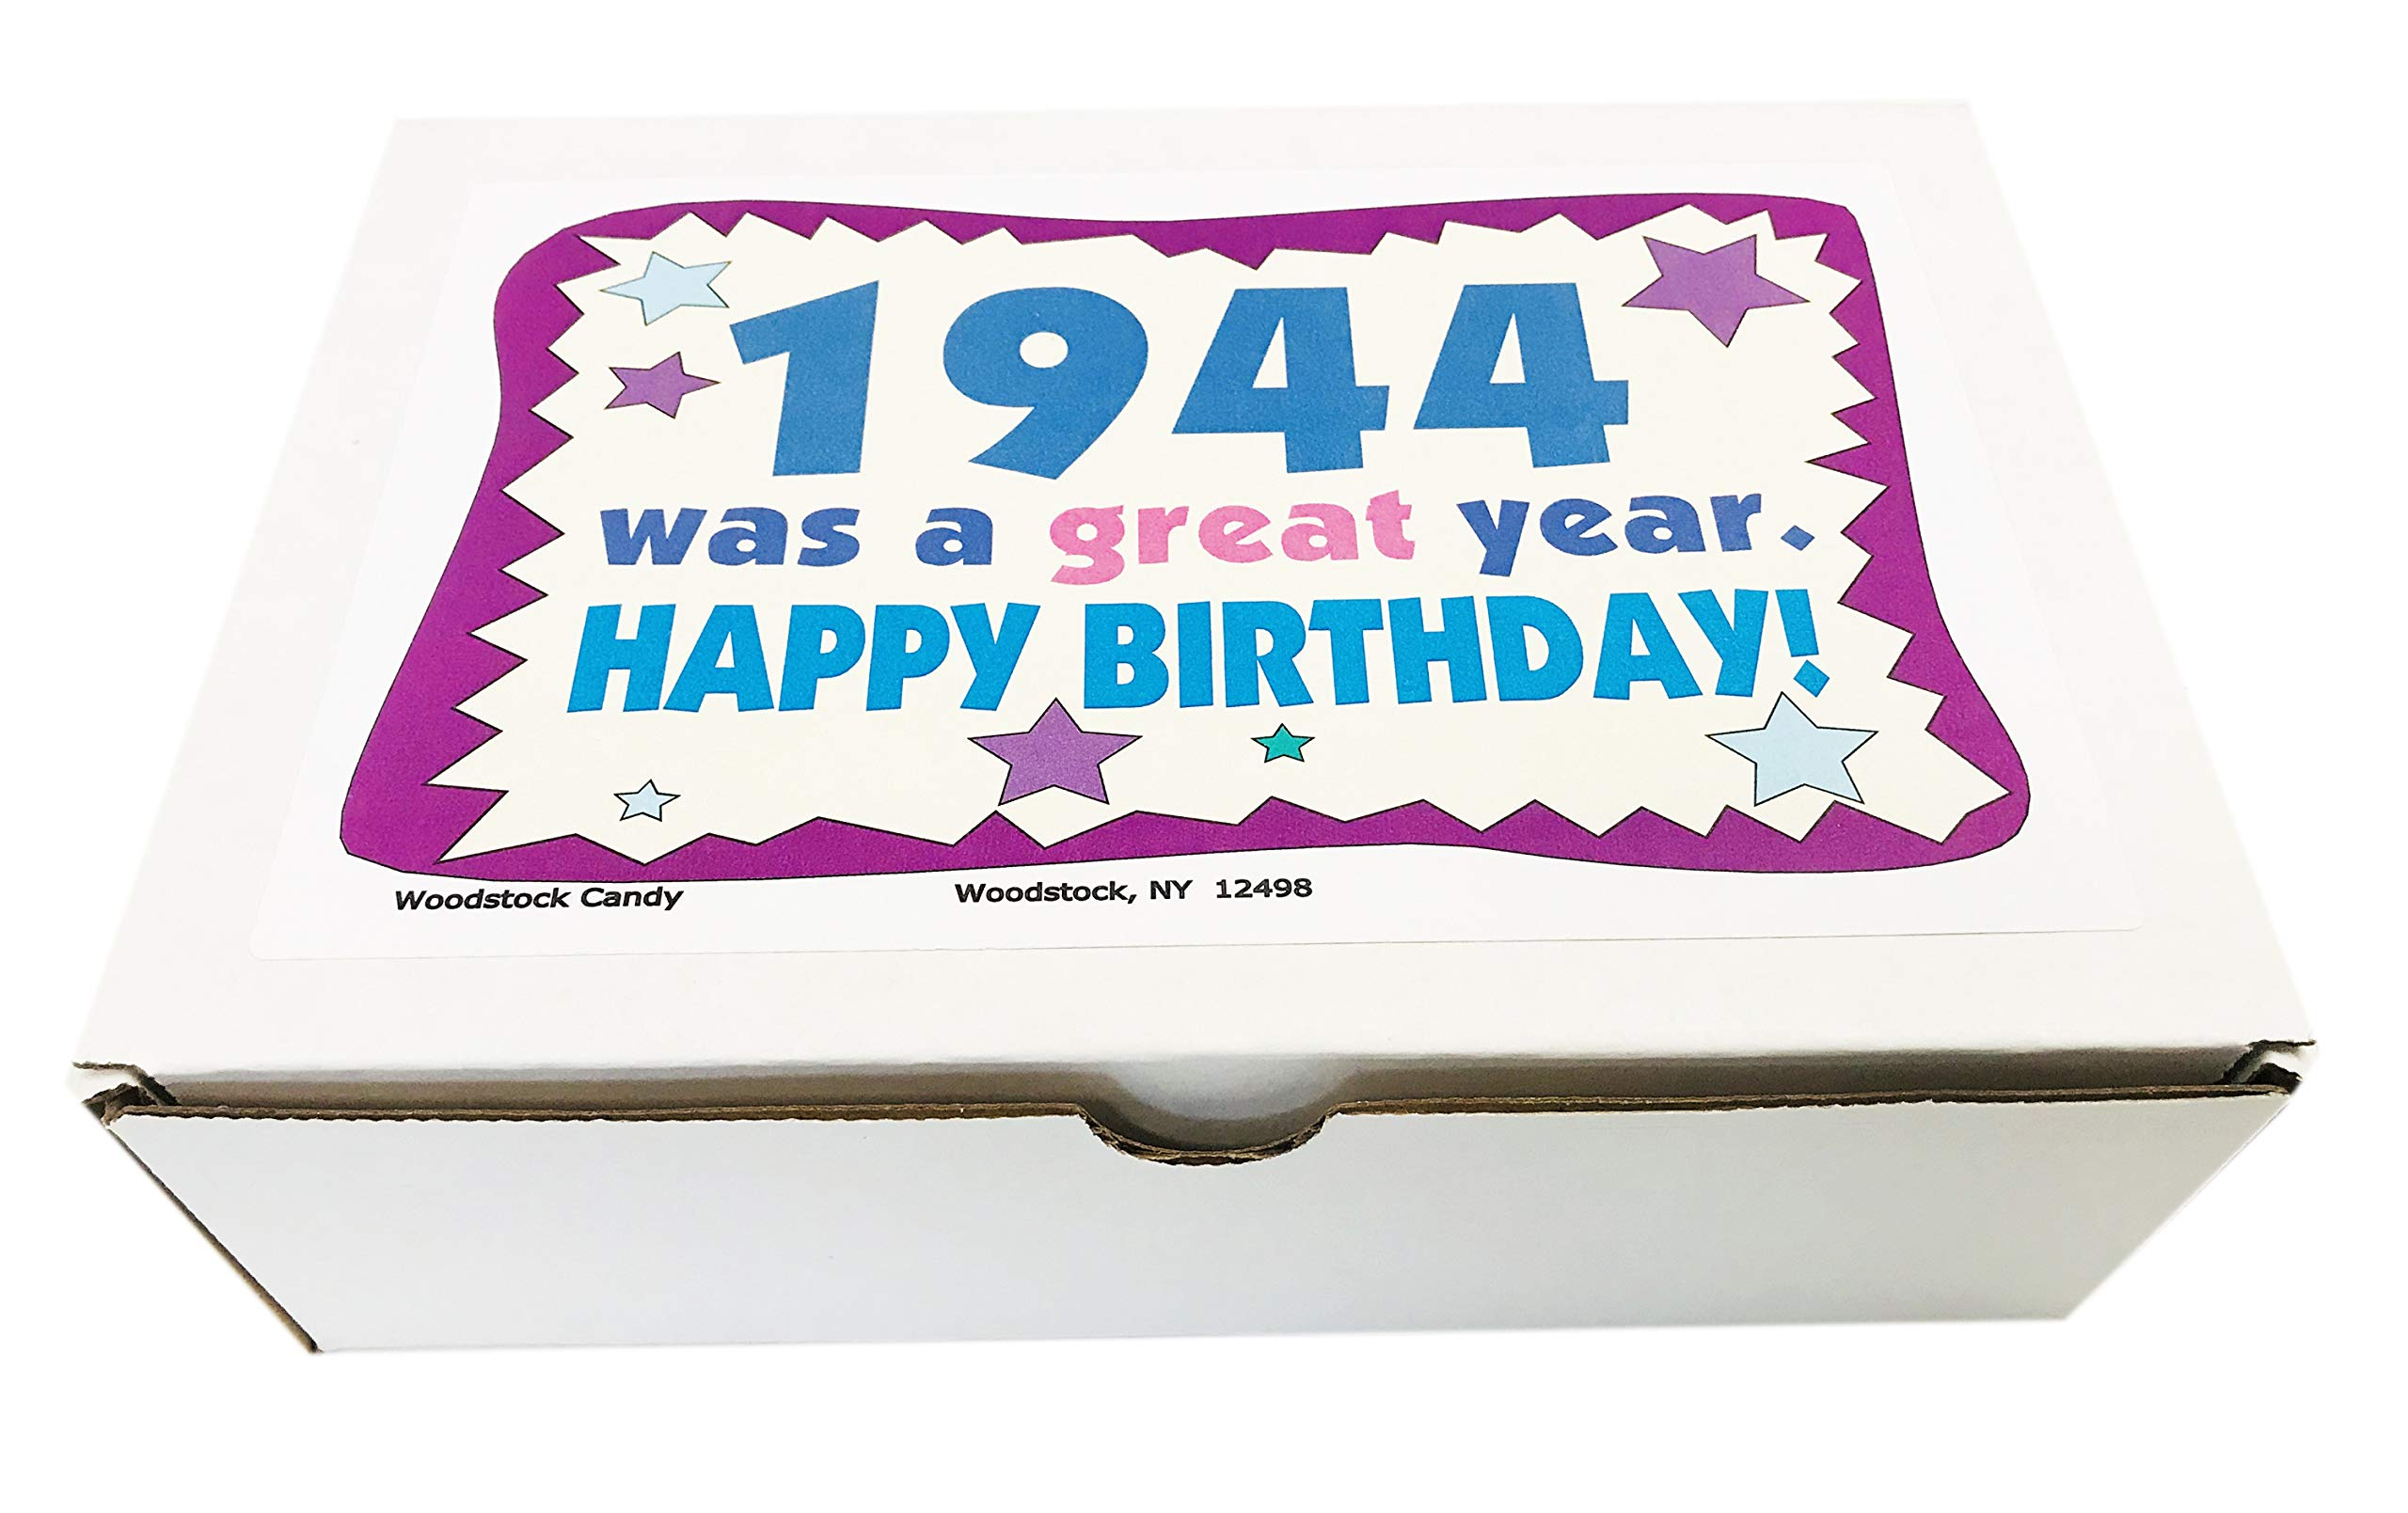 Woodstock Candy ~ 75th Birthday Gift Box of Nostalgic Retro Candy from Childhood for 75 Year Old Man or Woman Born 1944 Jr by Woodstock Candy (Image #2)